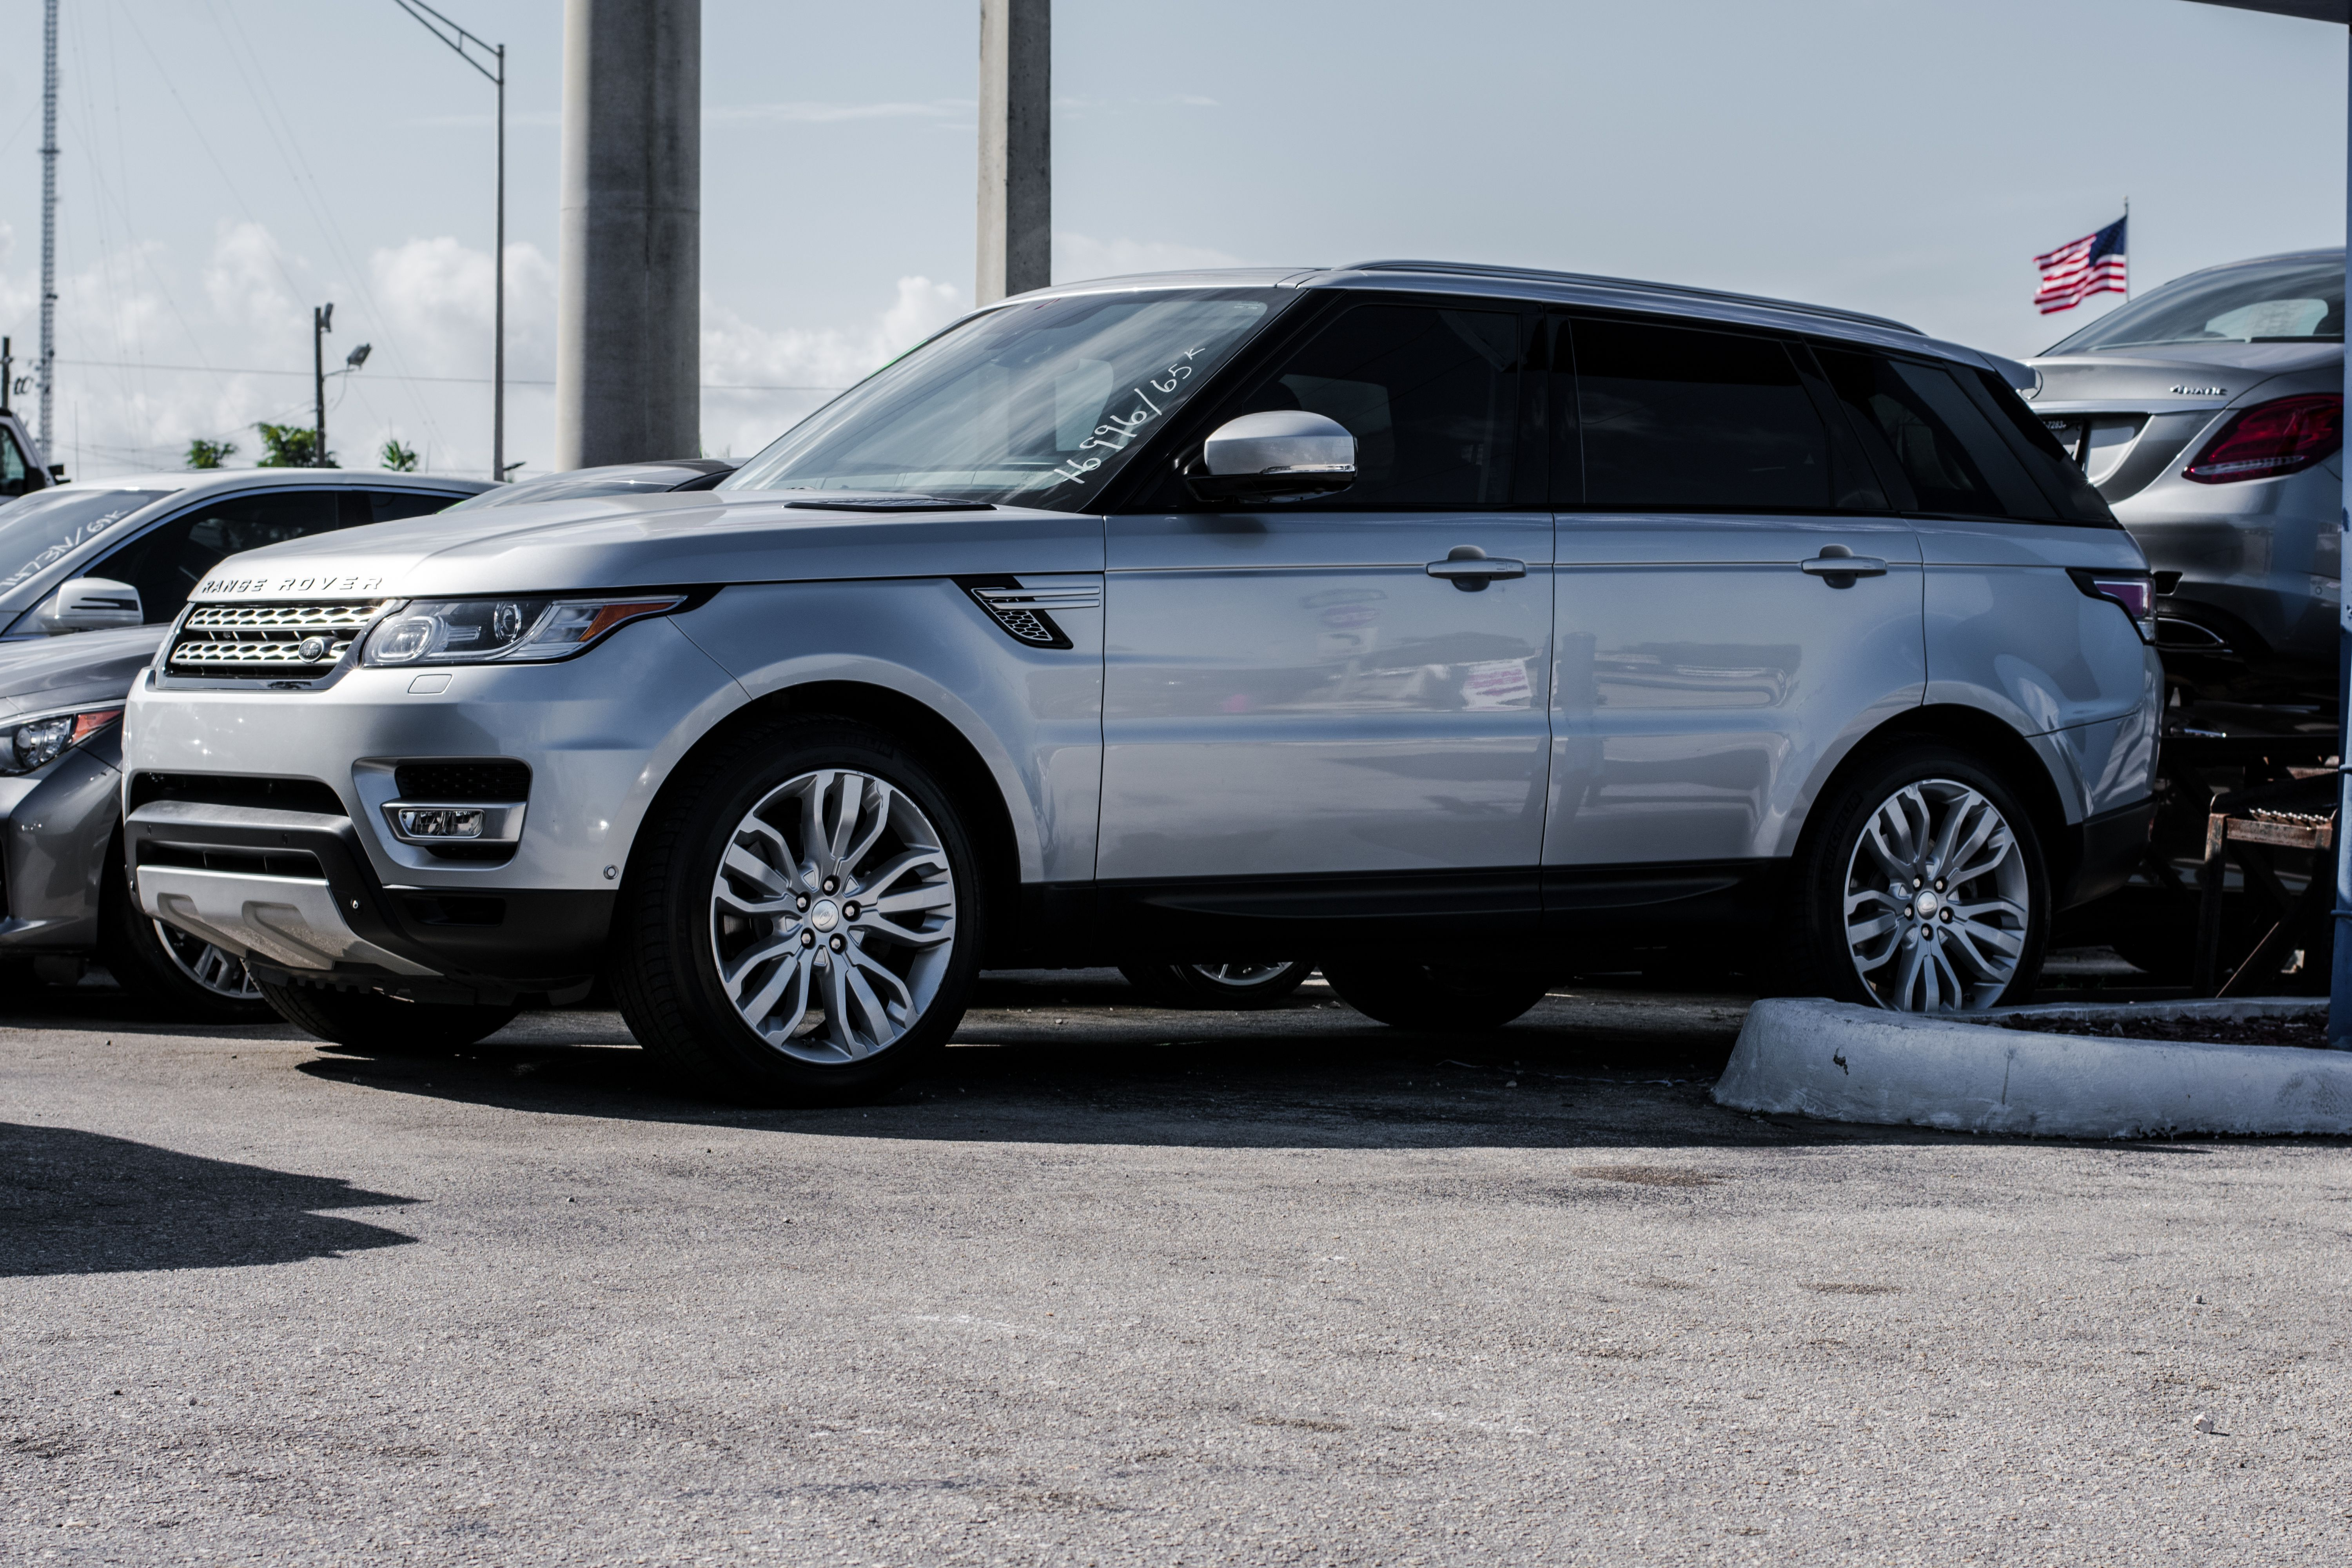 2014 Land Rover Range Rover Sport 3 0l V6 Supercharged Hse Rangerover Landrover Superchargedhse Newarrivals New Cars For Sale Used Cars Range Rover Sport